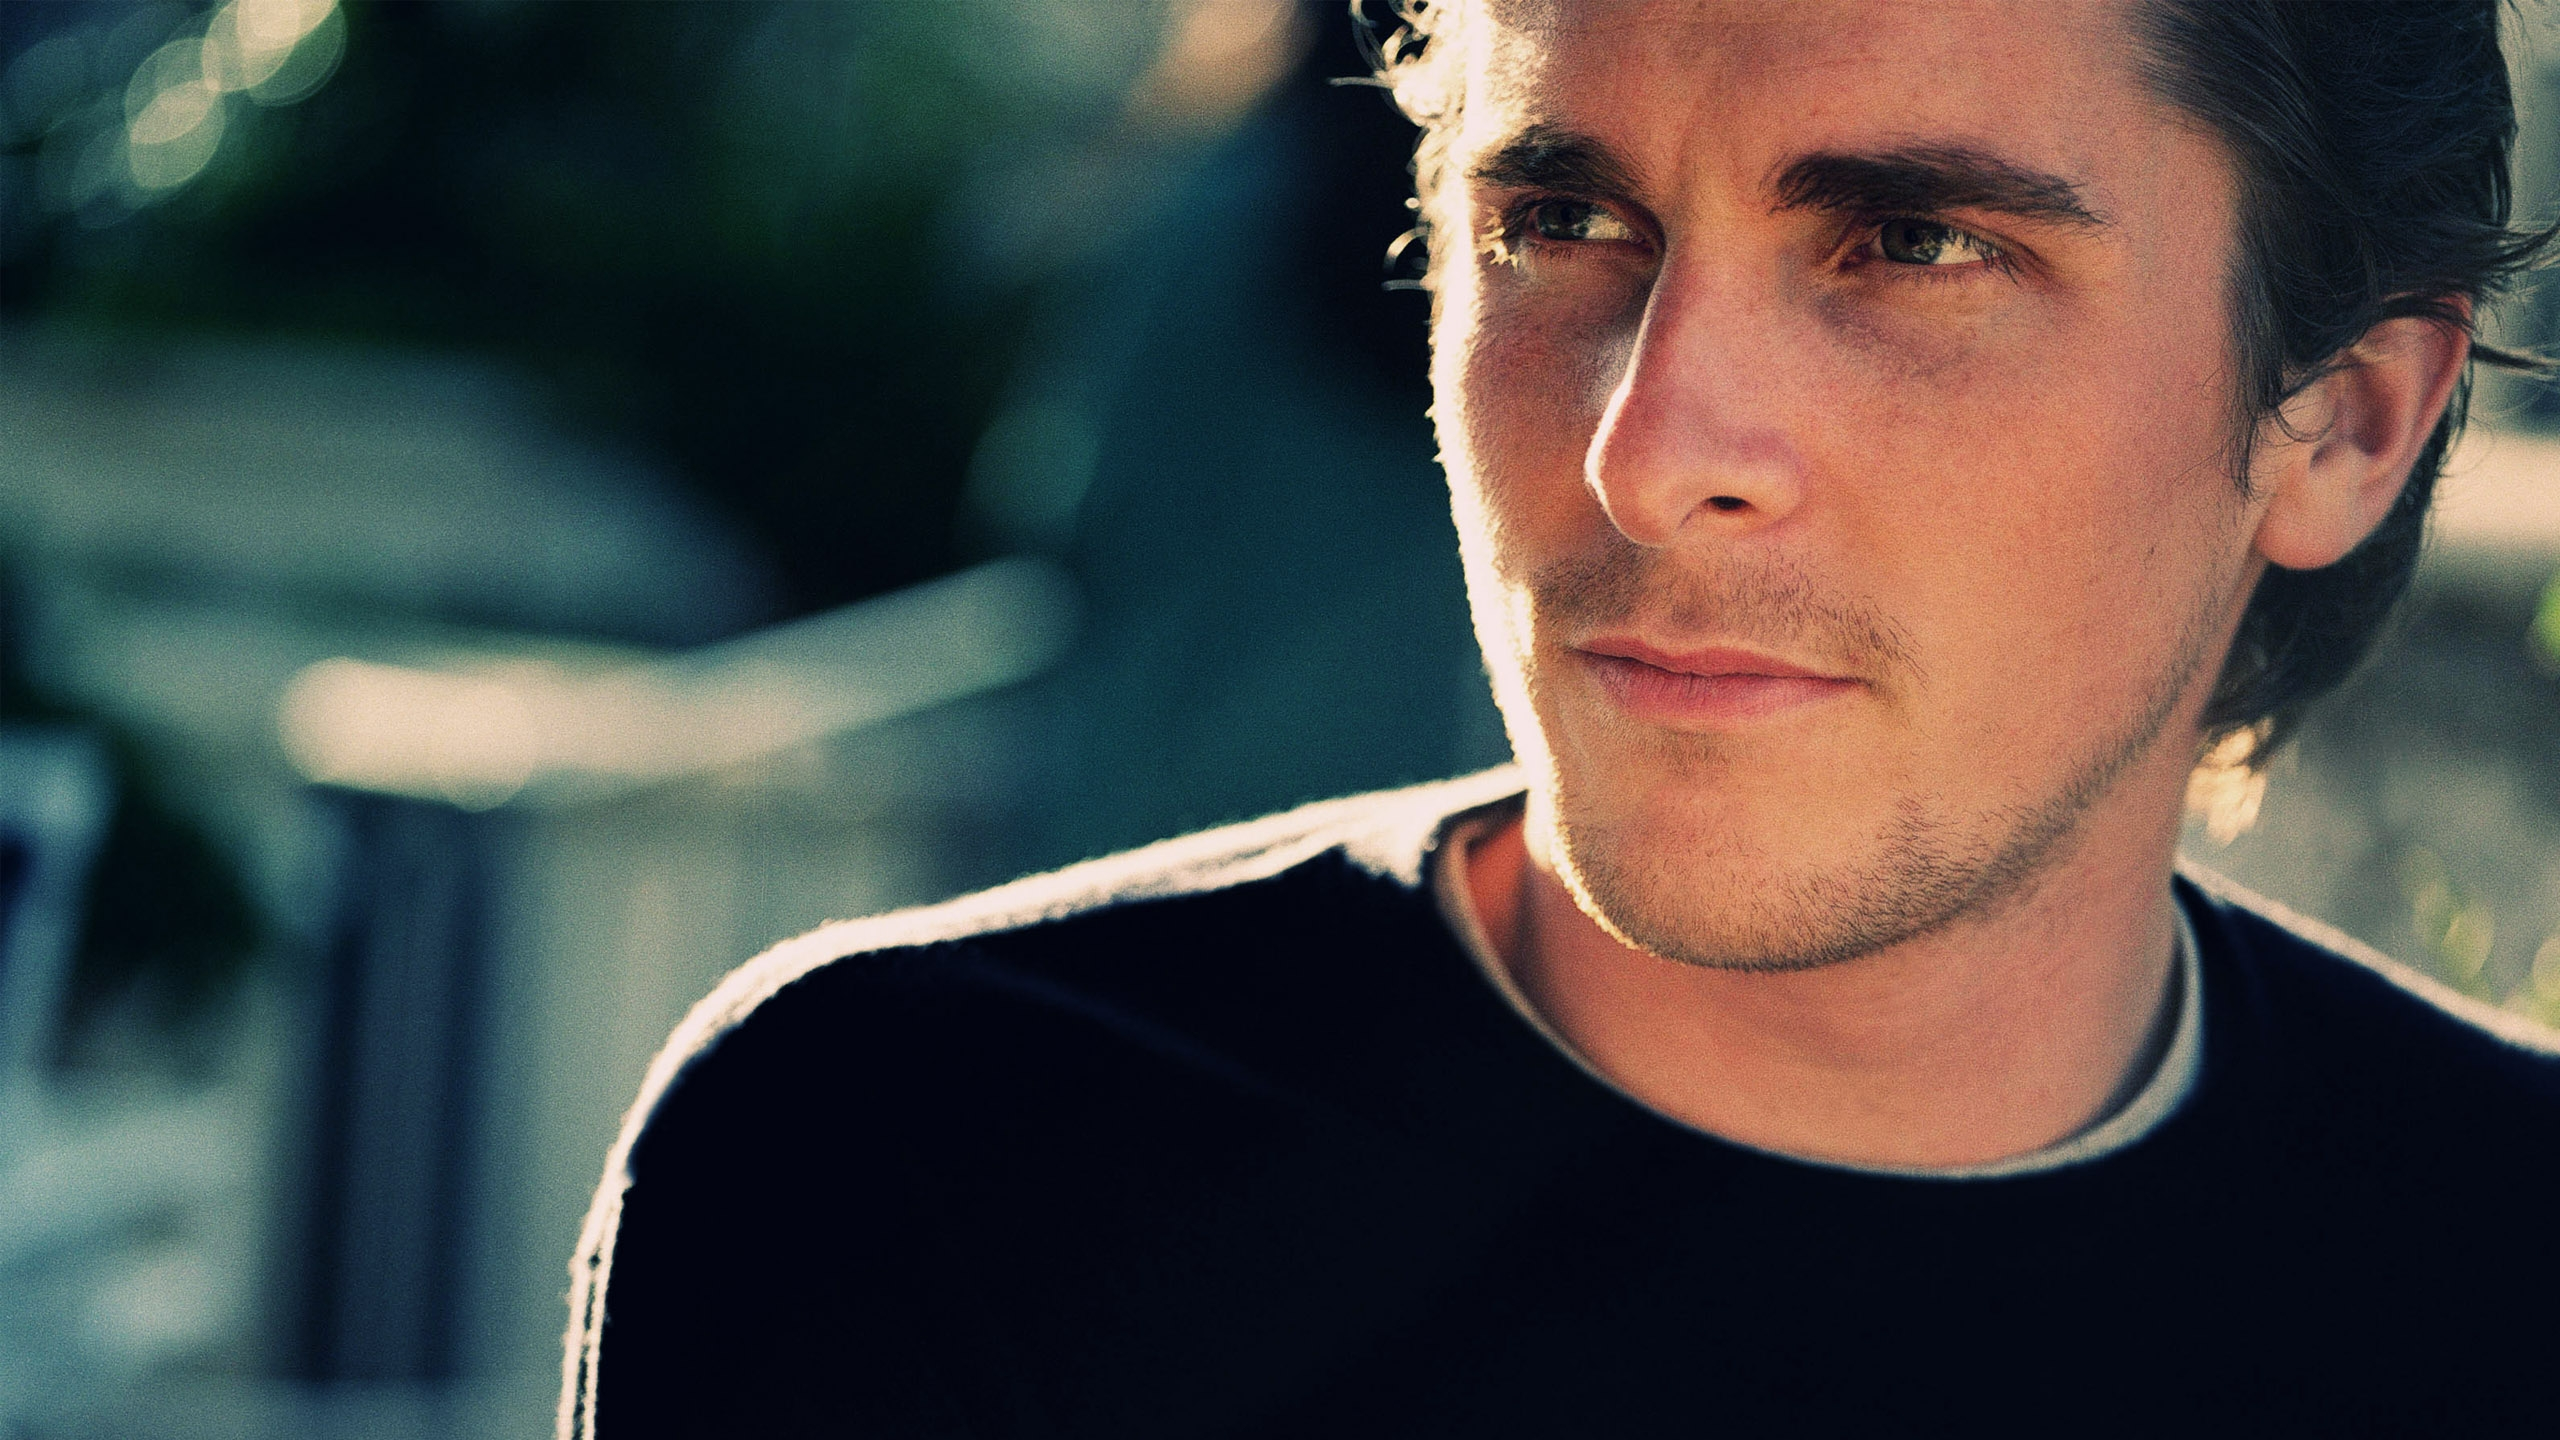 2560x1440 - Christian Bale Wallpapers 2